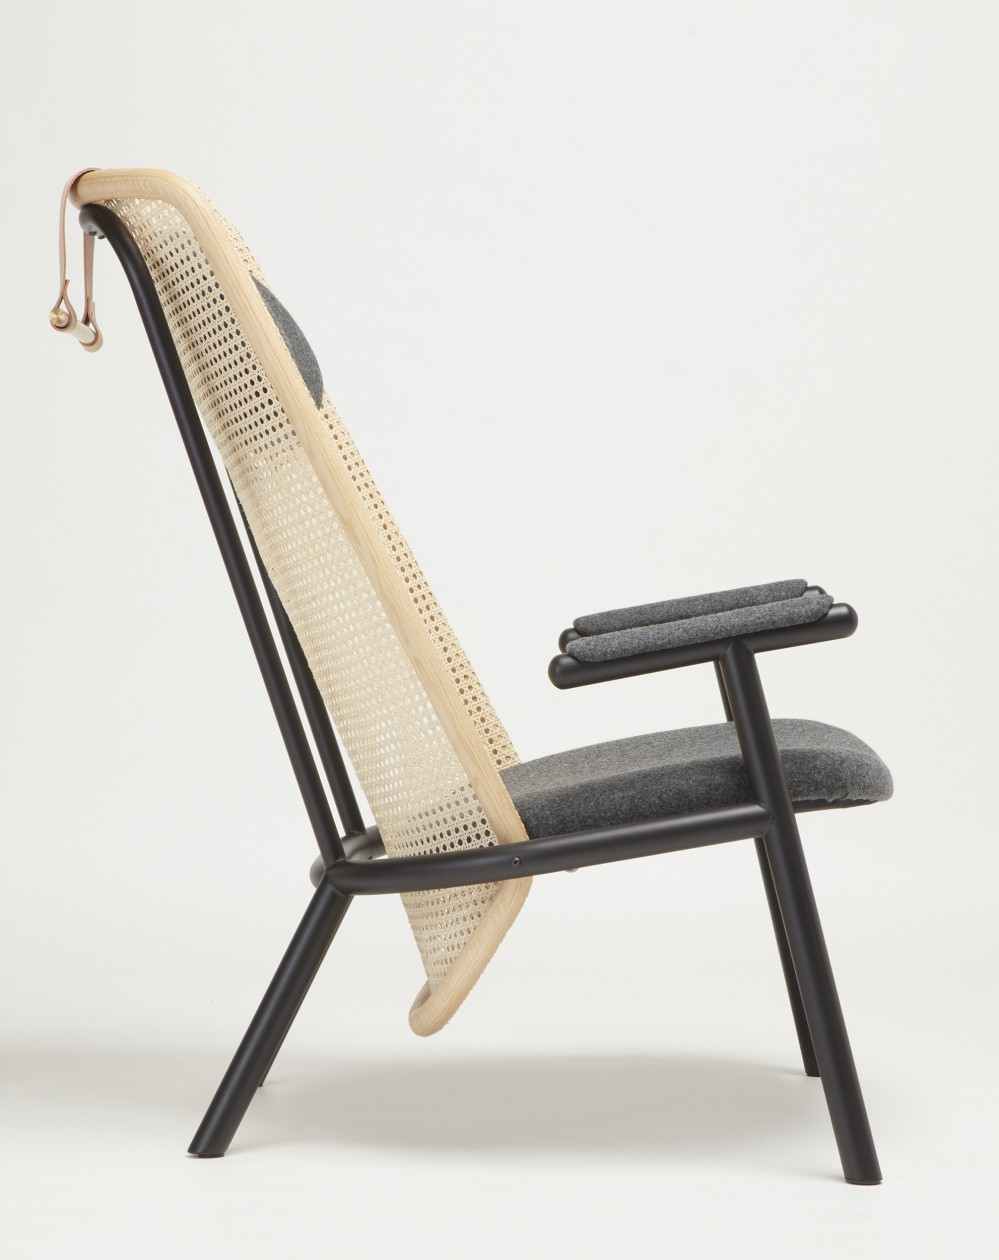 Fold Alain Gilles For Another Country Cane Cannage Rattan Rotain Seat Armchair Fauteuil Design Conte In 2020 Wooden Lounge Chair Chair Design Industrial Metal Chairs